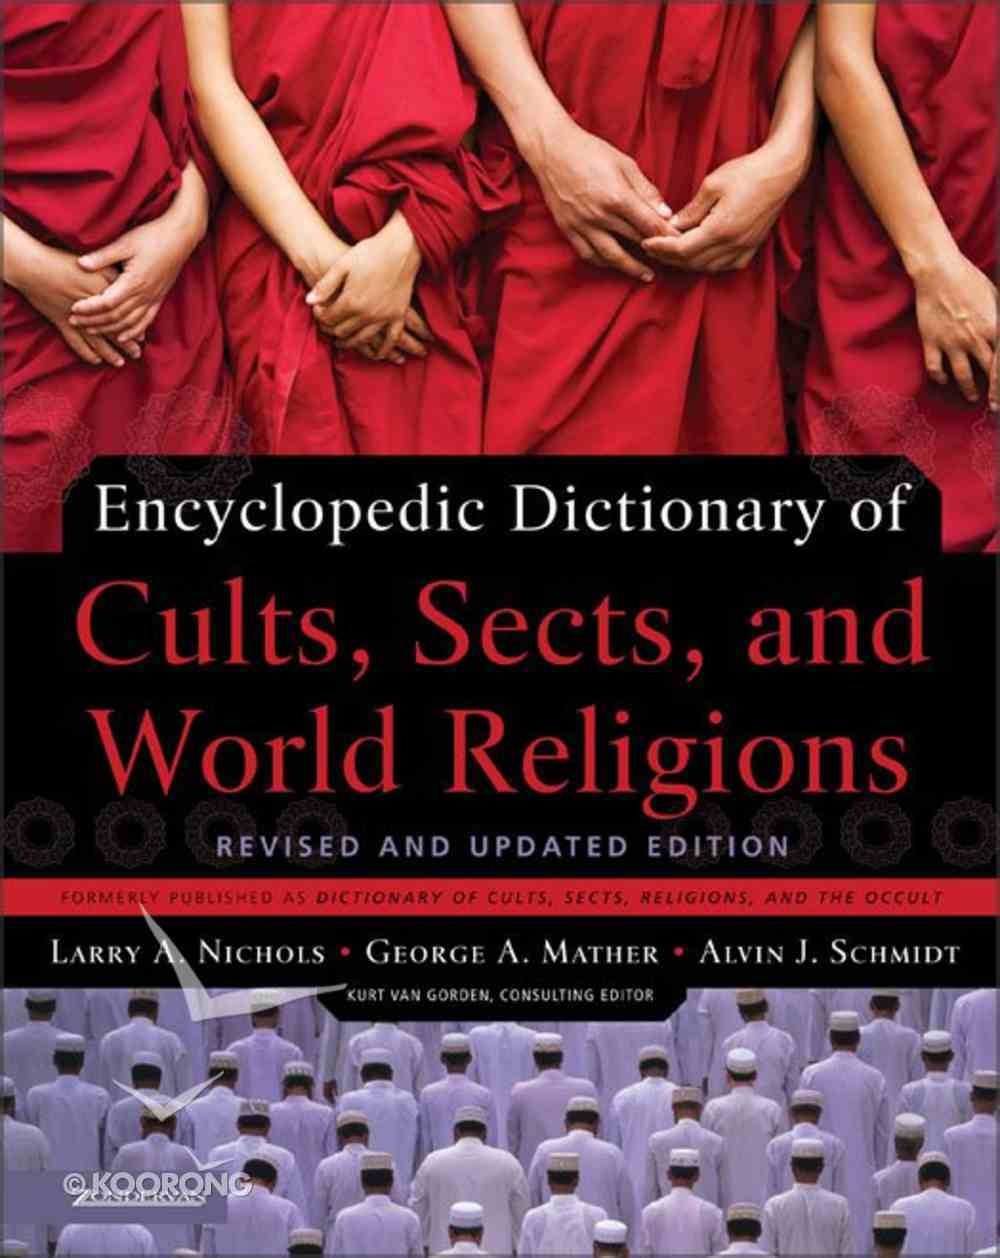 Encyclopedic Dictionary of Cults, Sects, and World Religions eBook